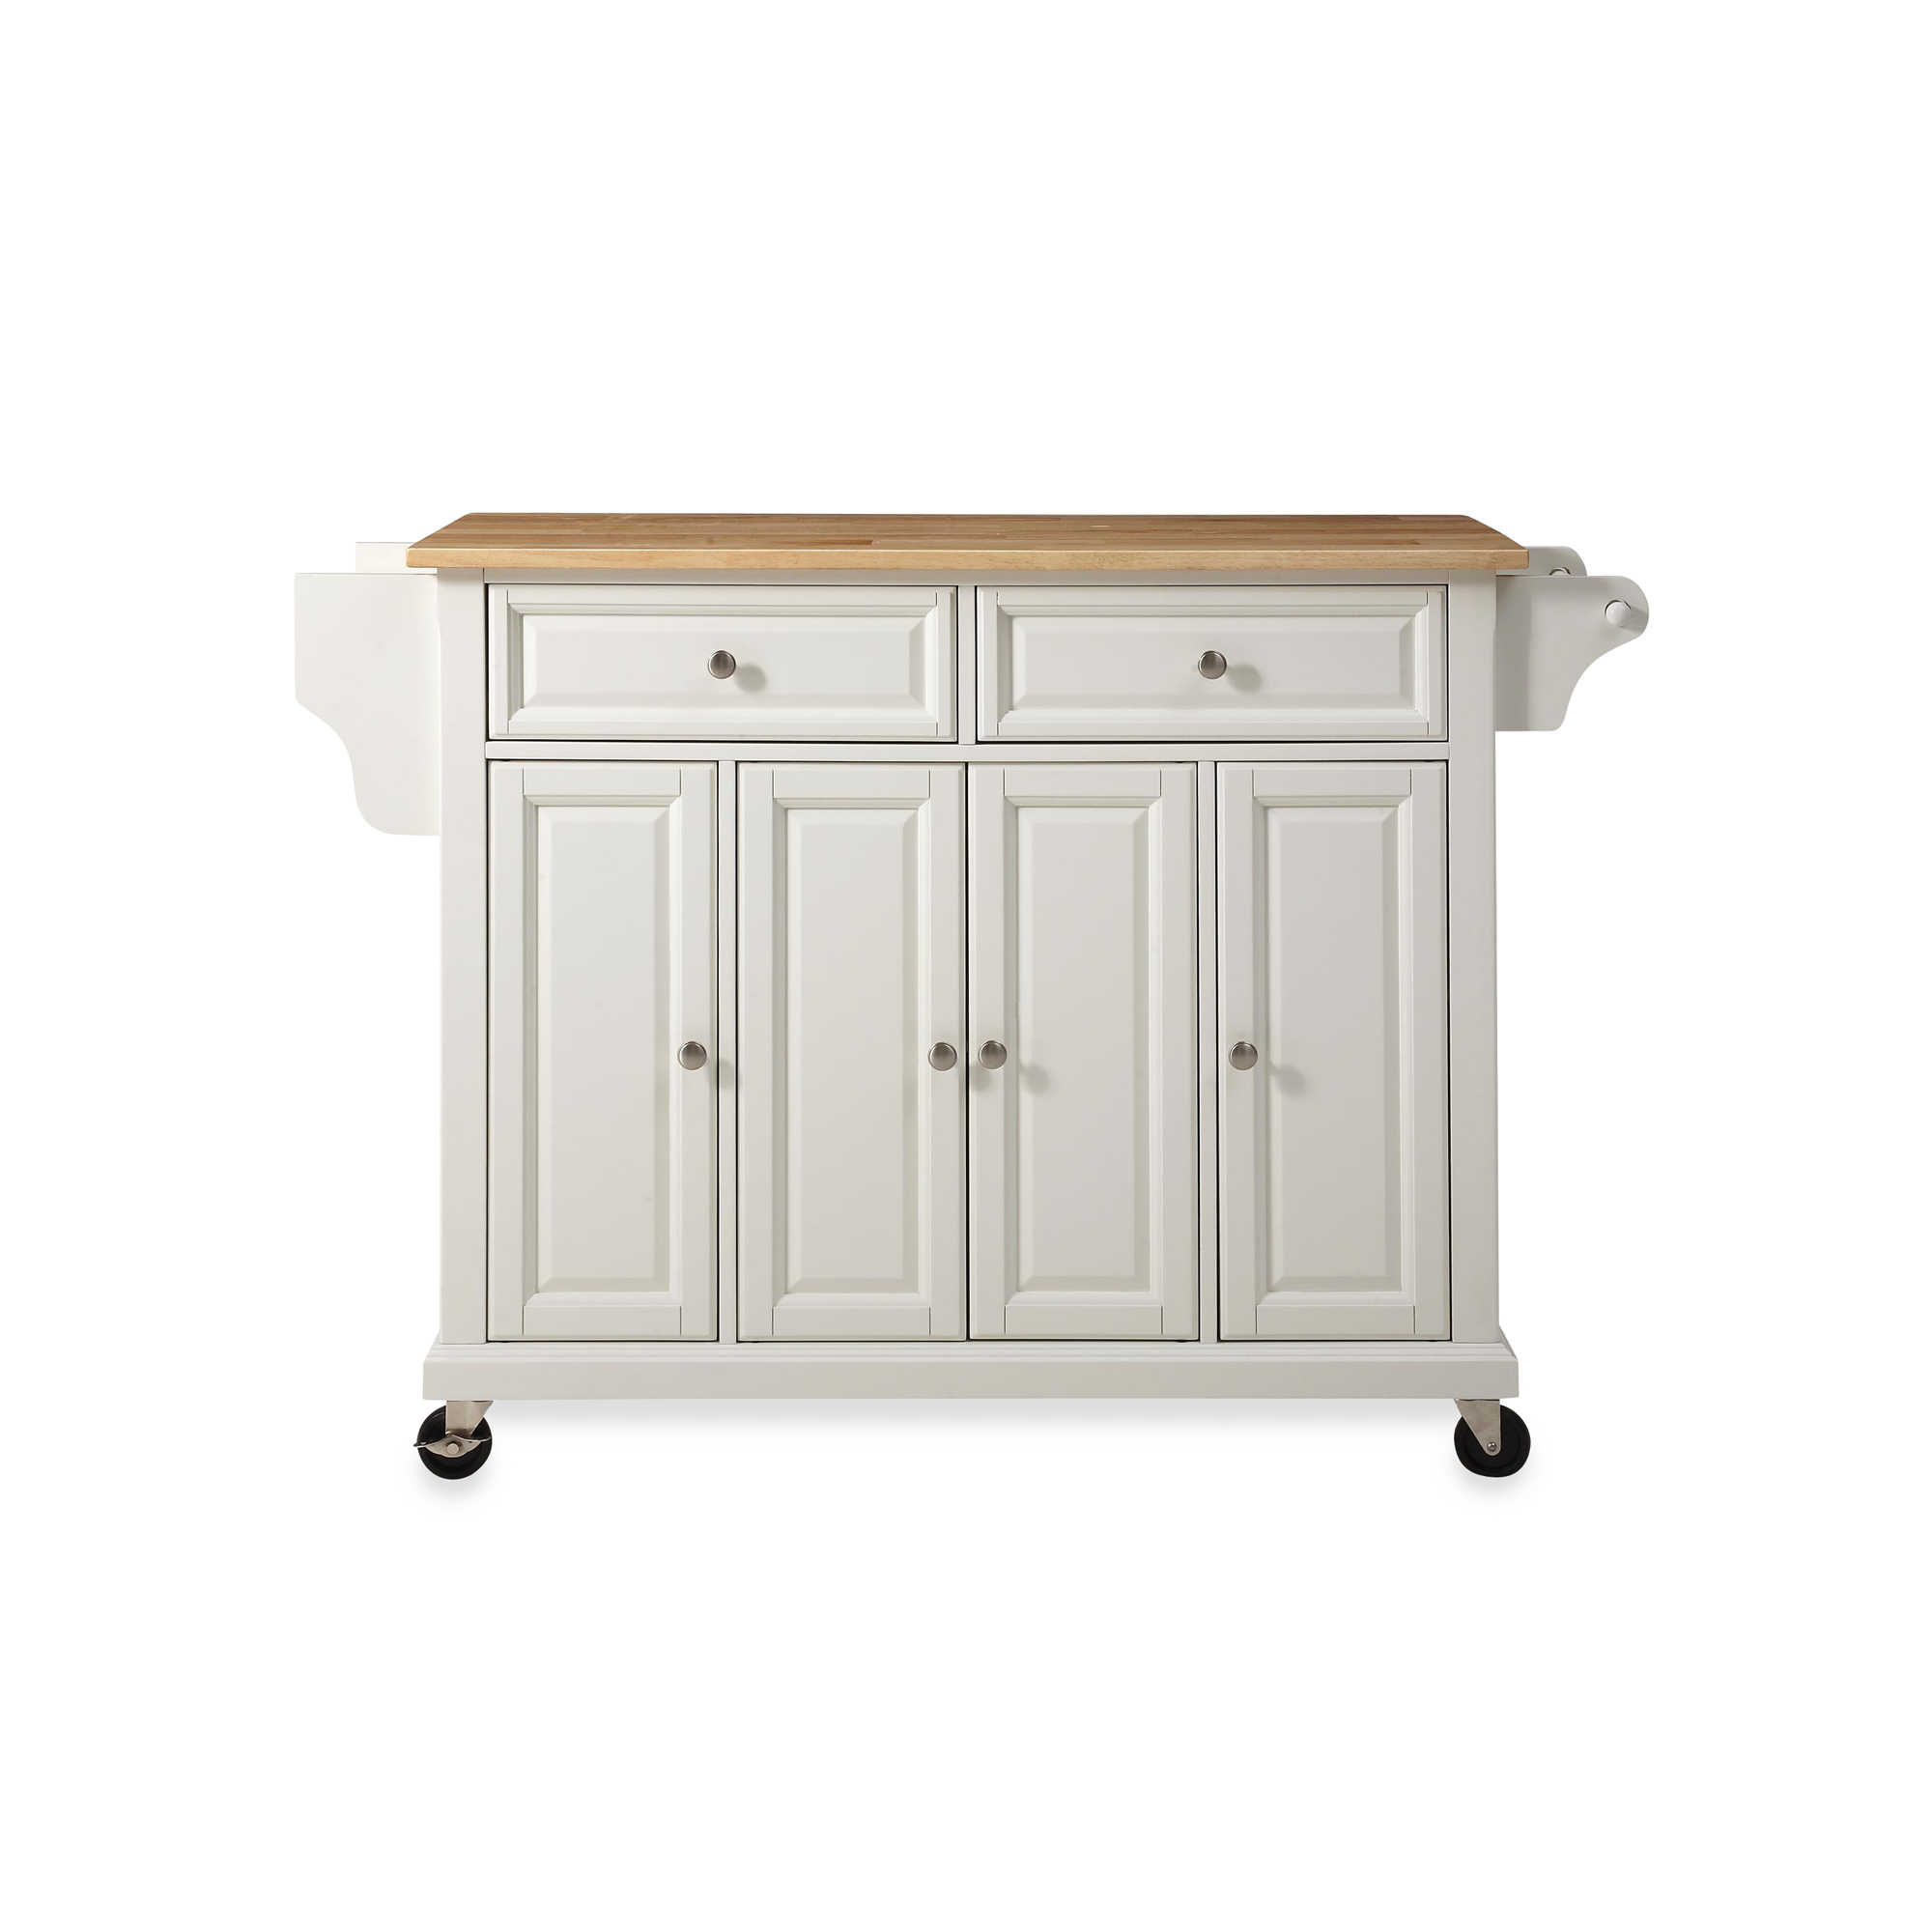 Crosley Natural Wood Top Rolling Kitchen Cart/Island - Bed Bath & Beyond